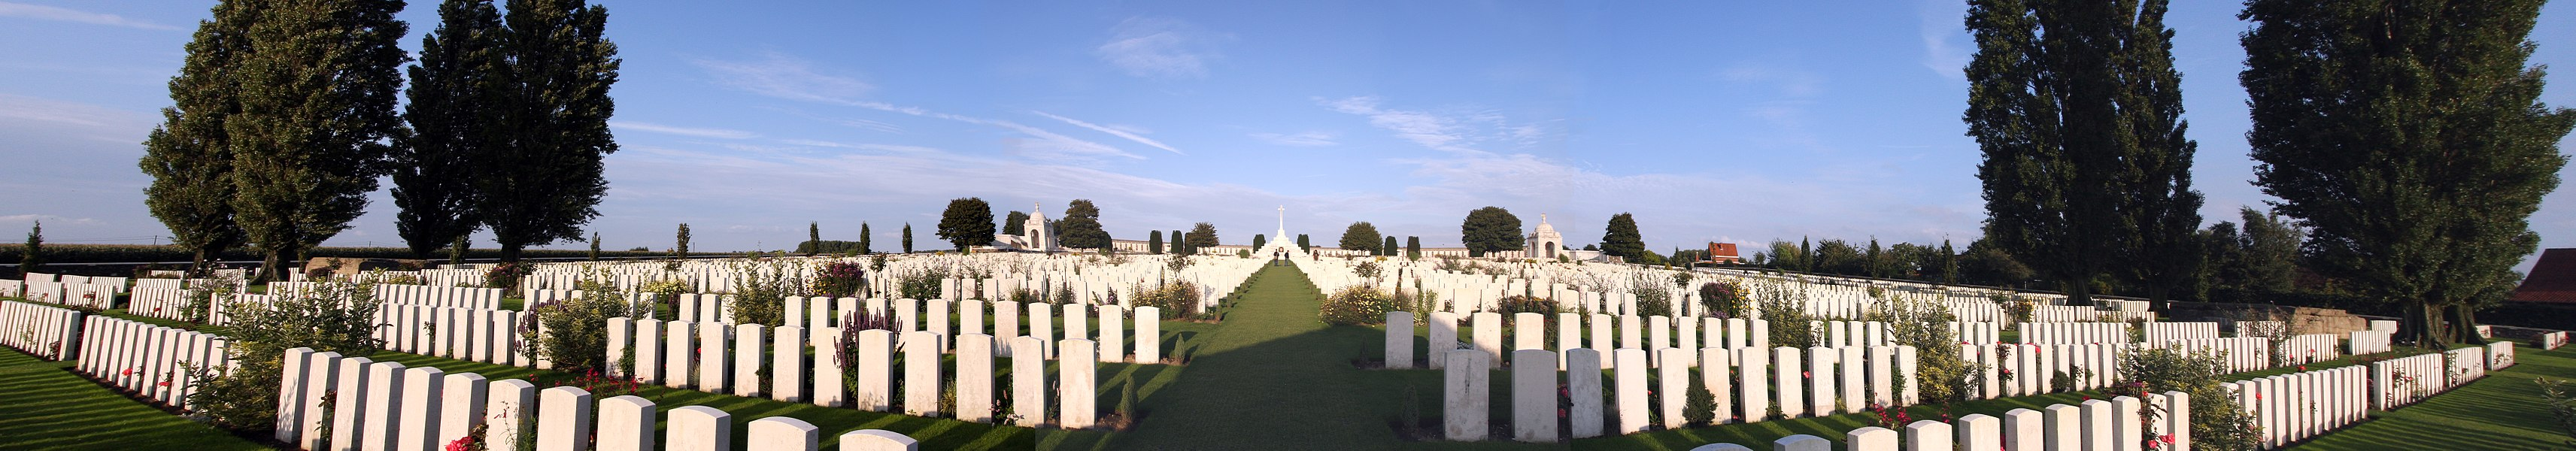 The Commonwealth War Grave site, Tyne Cot, Belgium